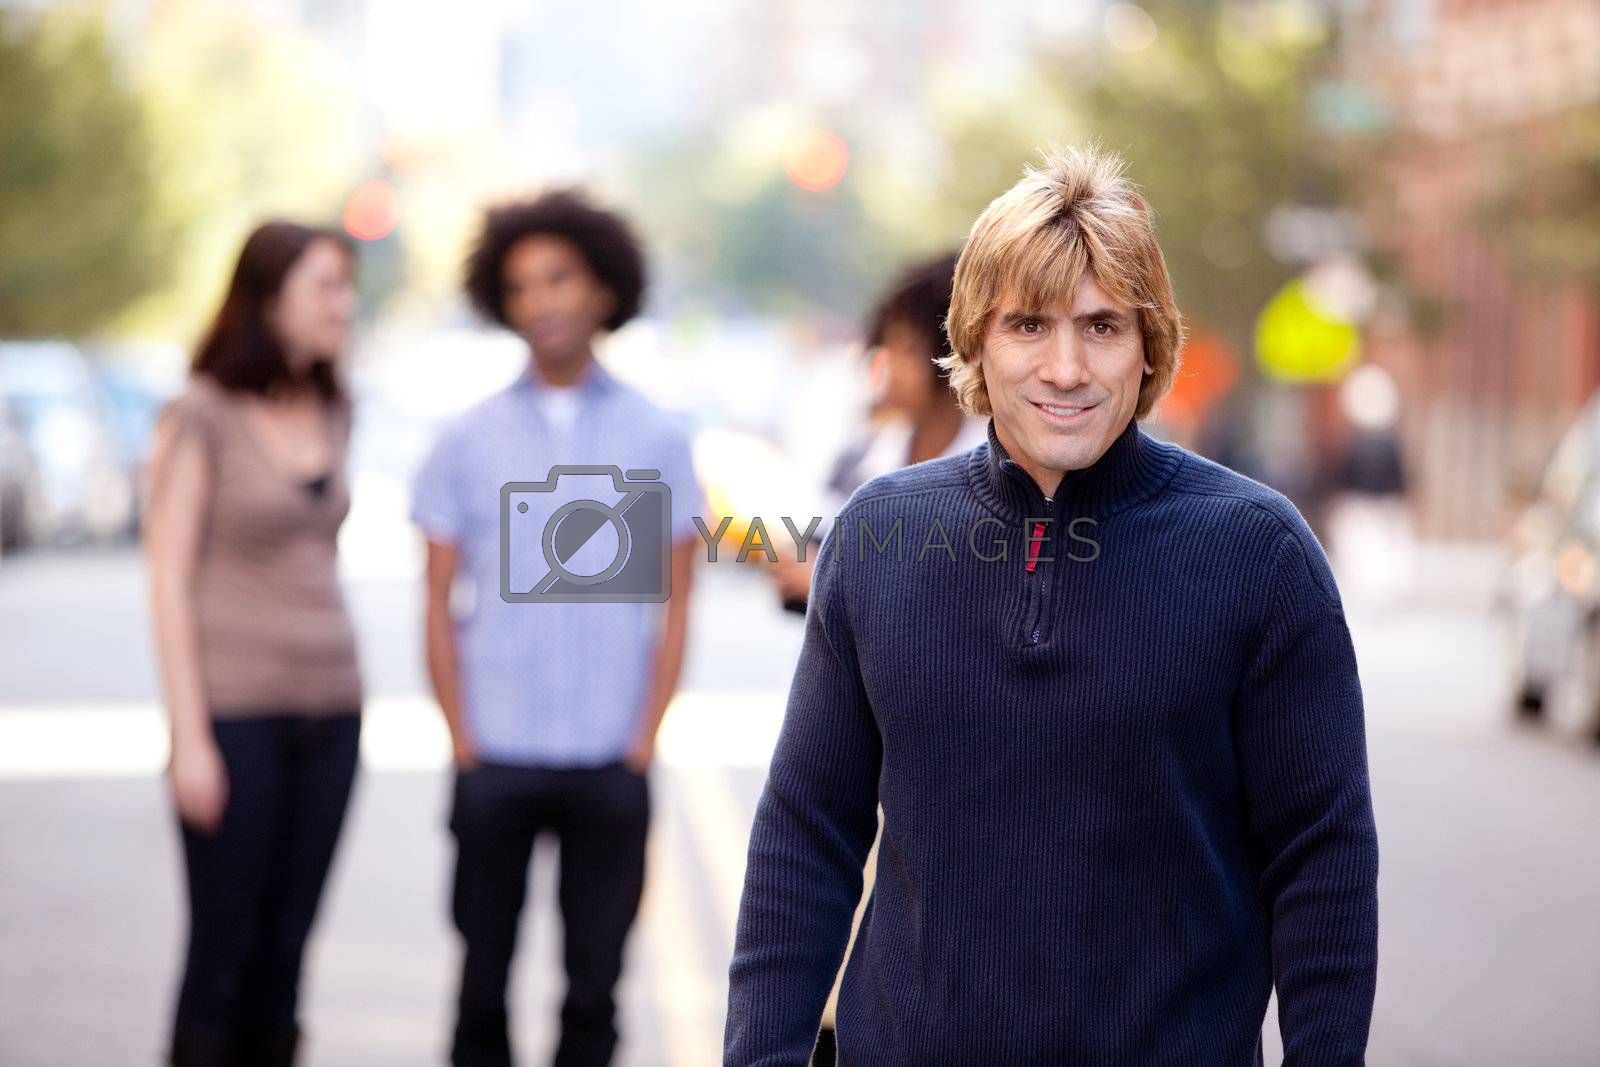 A group of people in a city setting - a caucasian male in the foreground